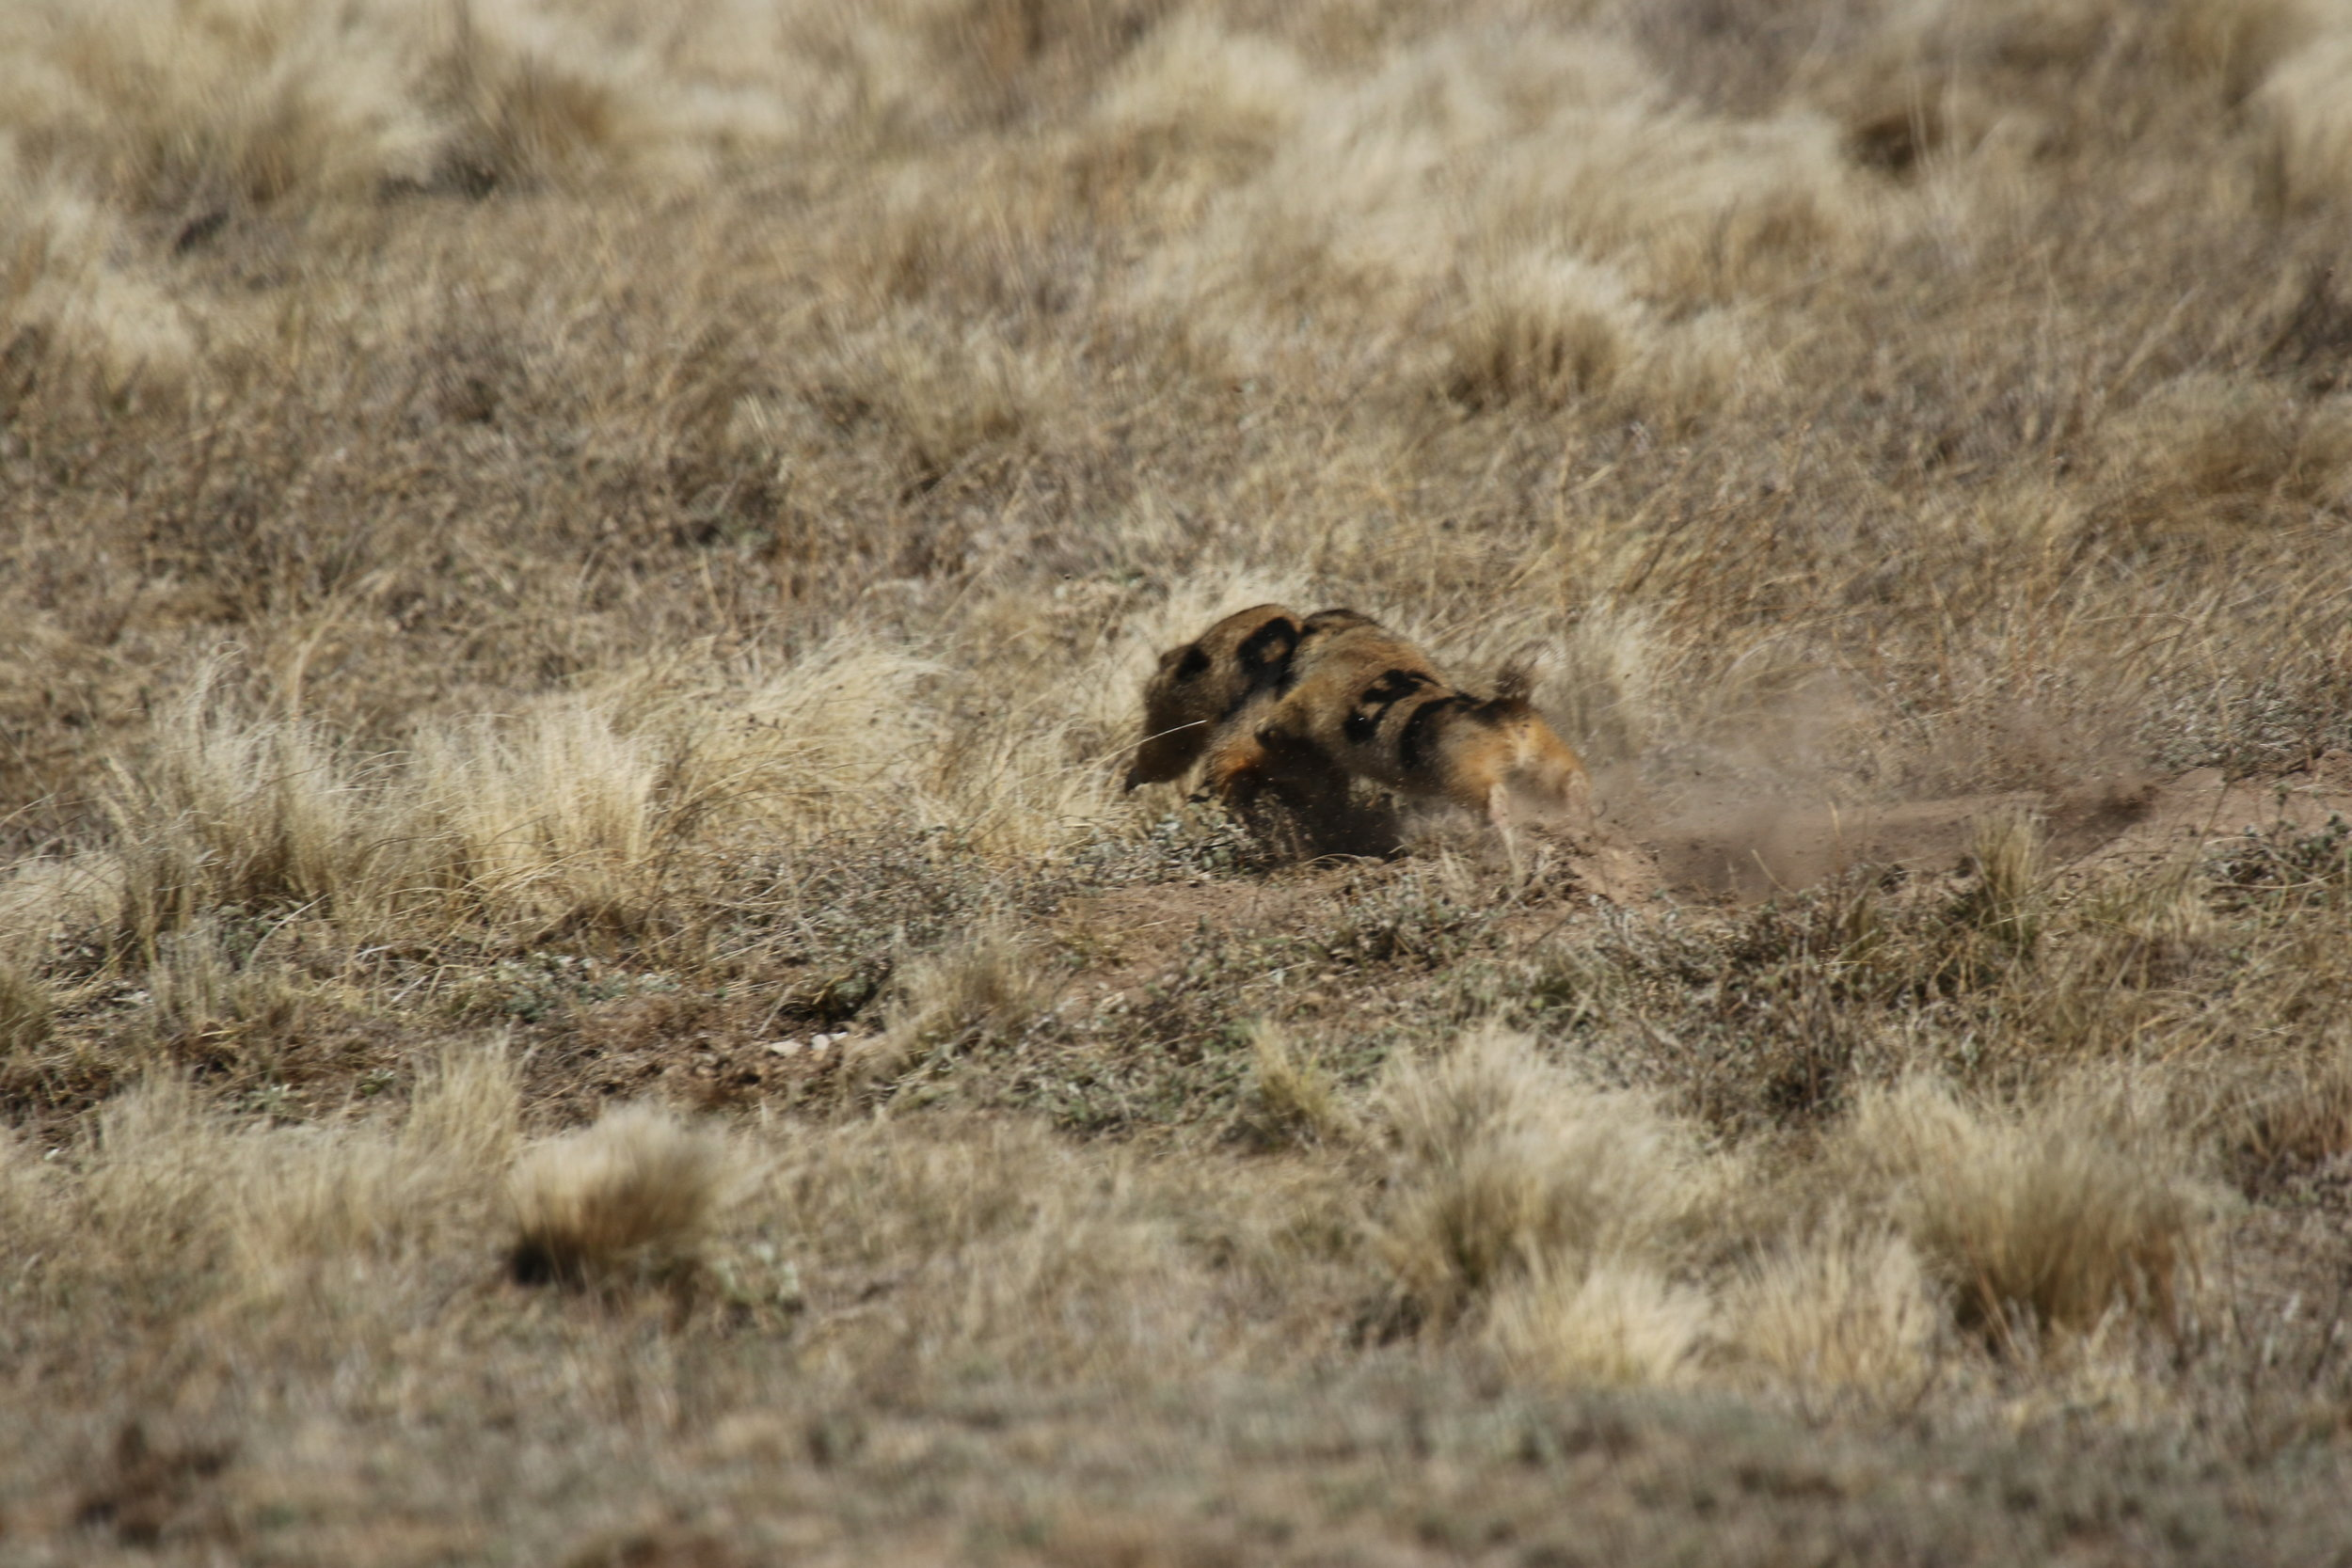 31 aims a bite at 29's flank as the other dog retreats. This would be scored as a territorial dispute and chase (TD, C) but with no fight (F), as the two prairie dogs did not roll into full-contact fighting.  ©MRR 2017